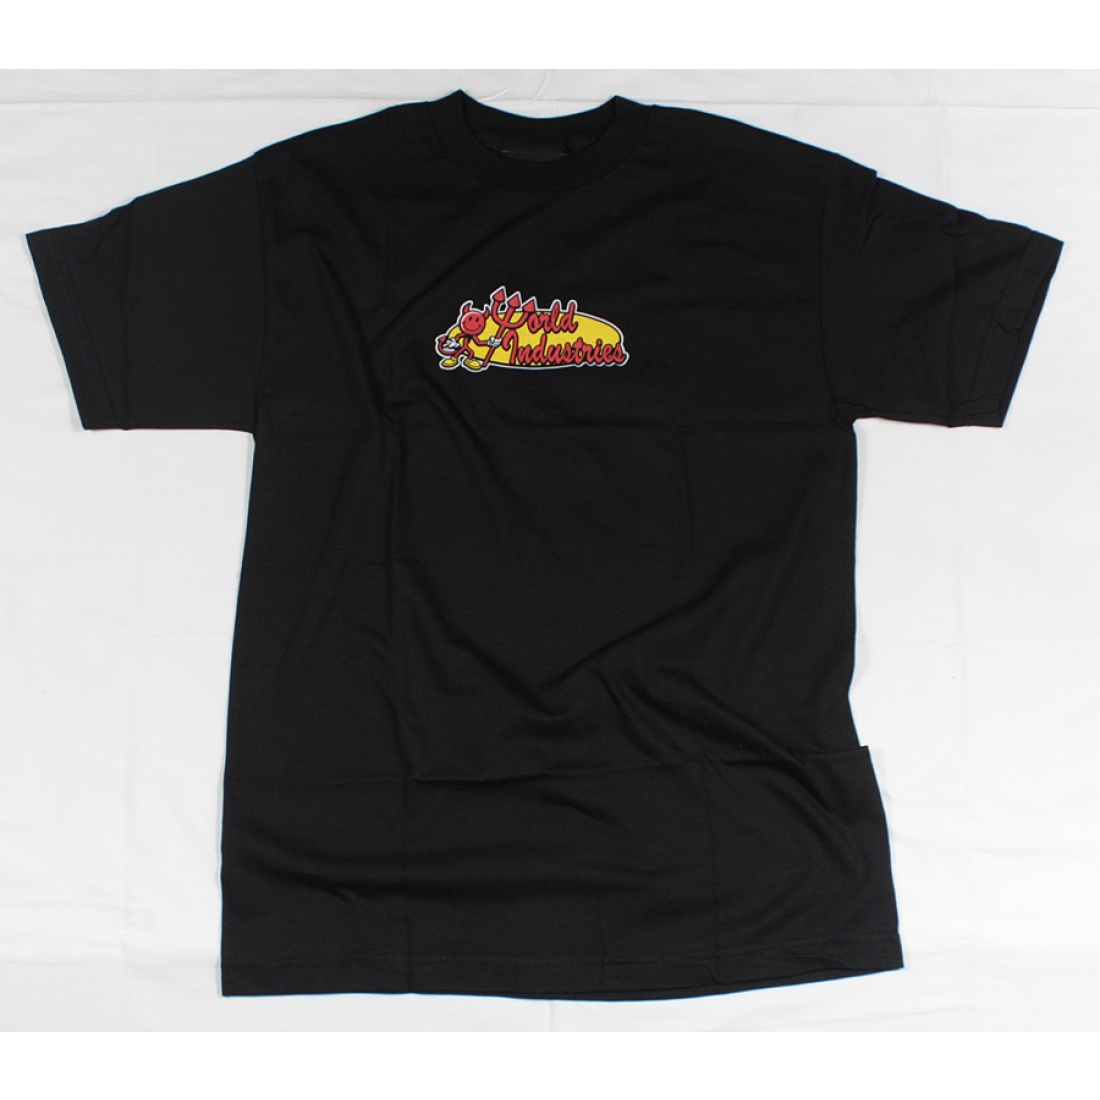 WLD-Devil Oval t-shirt Black Medium